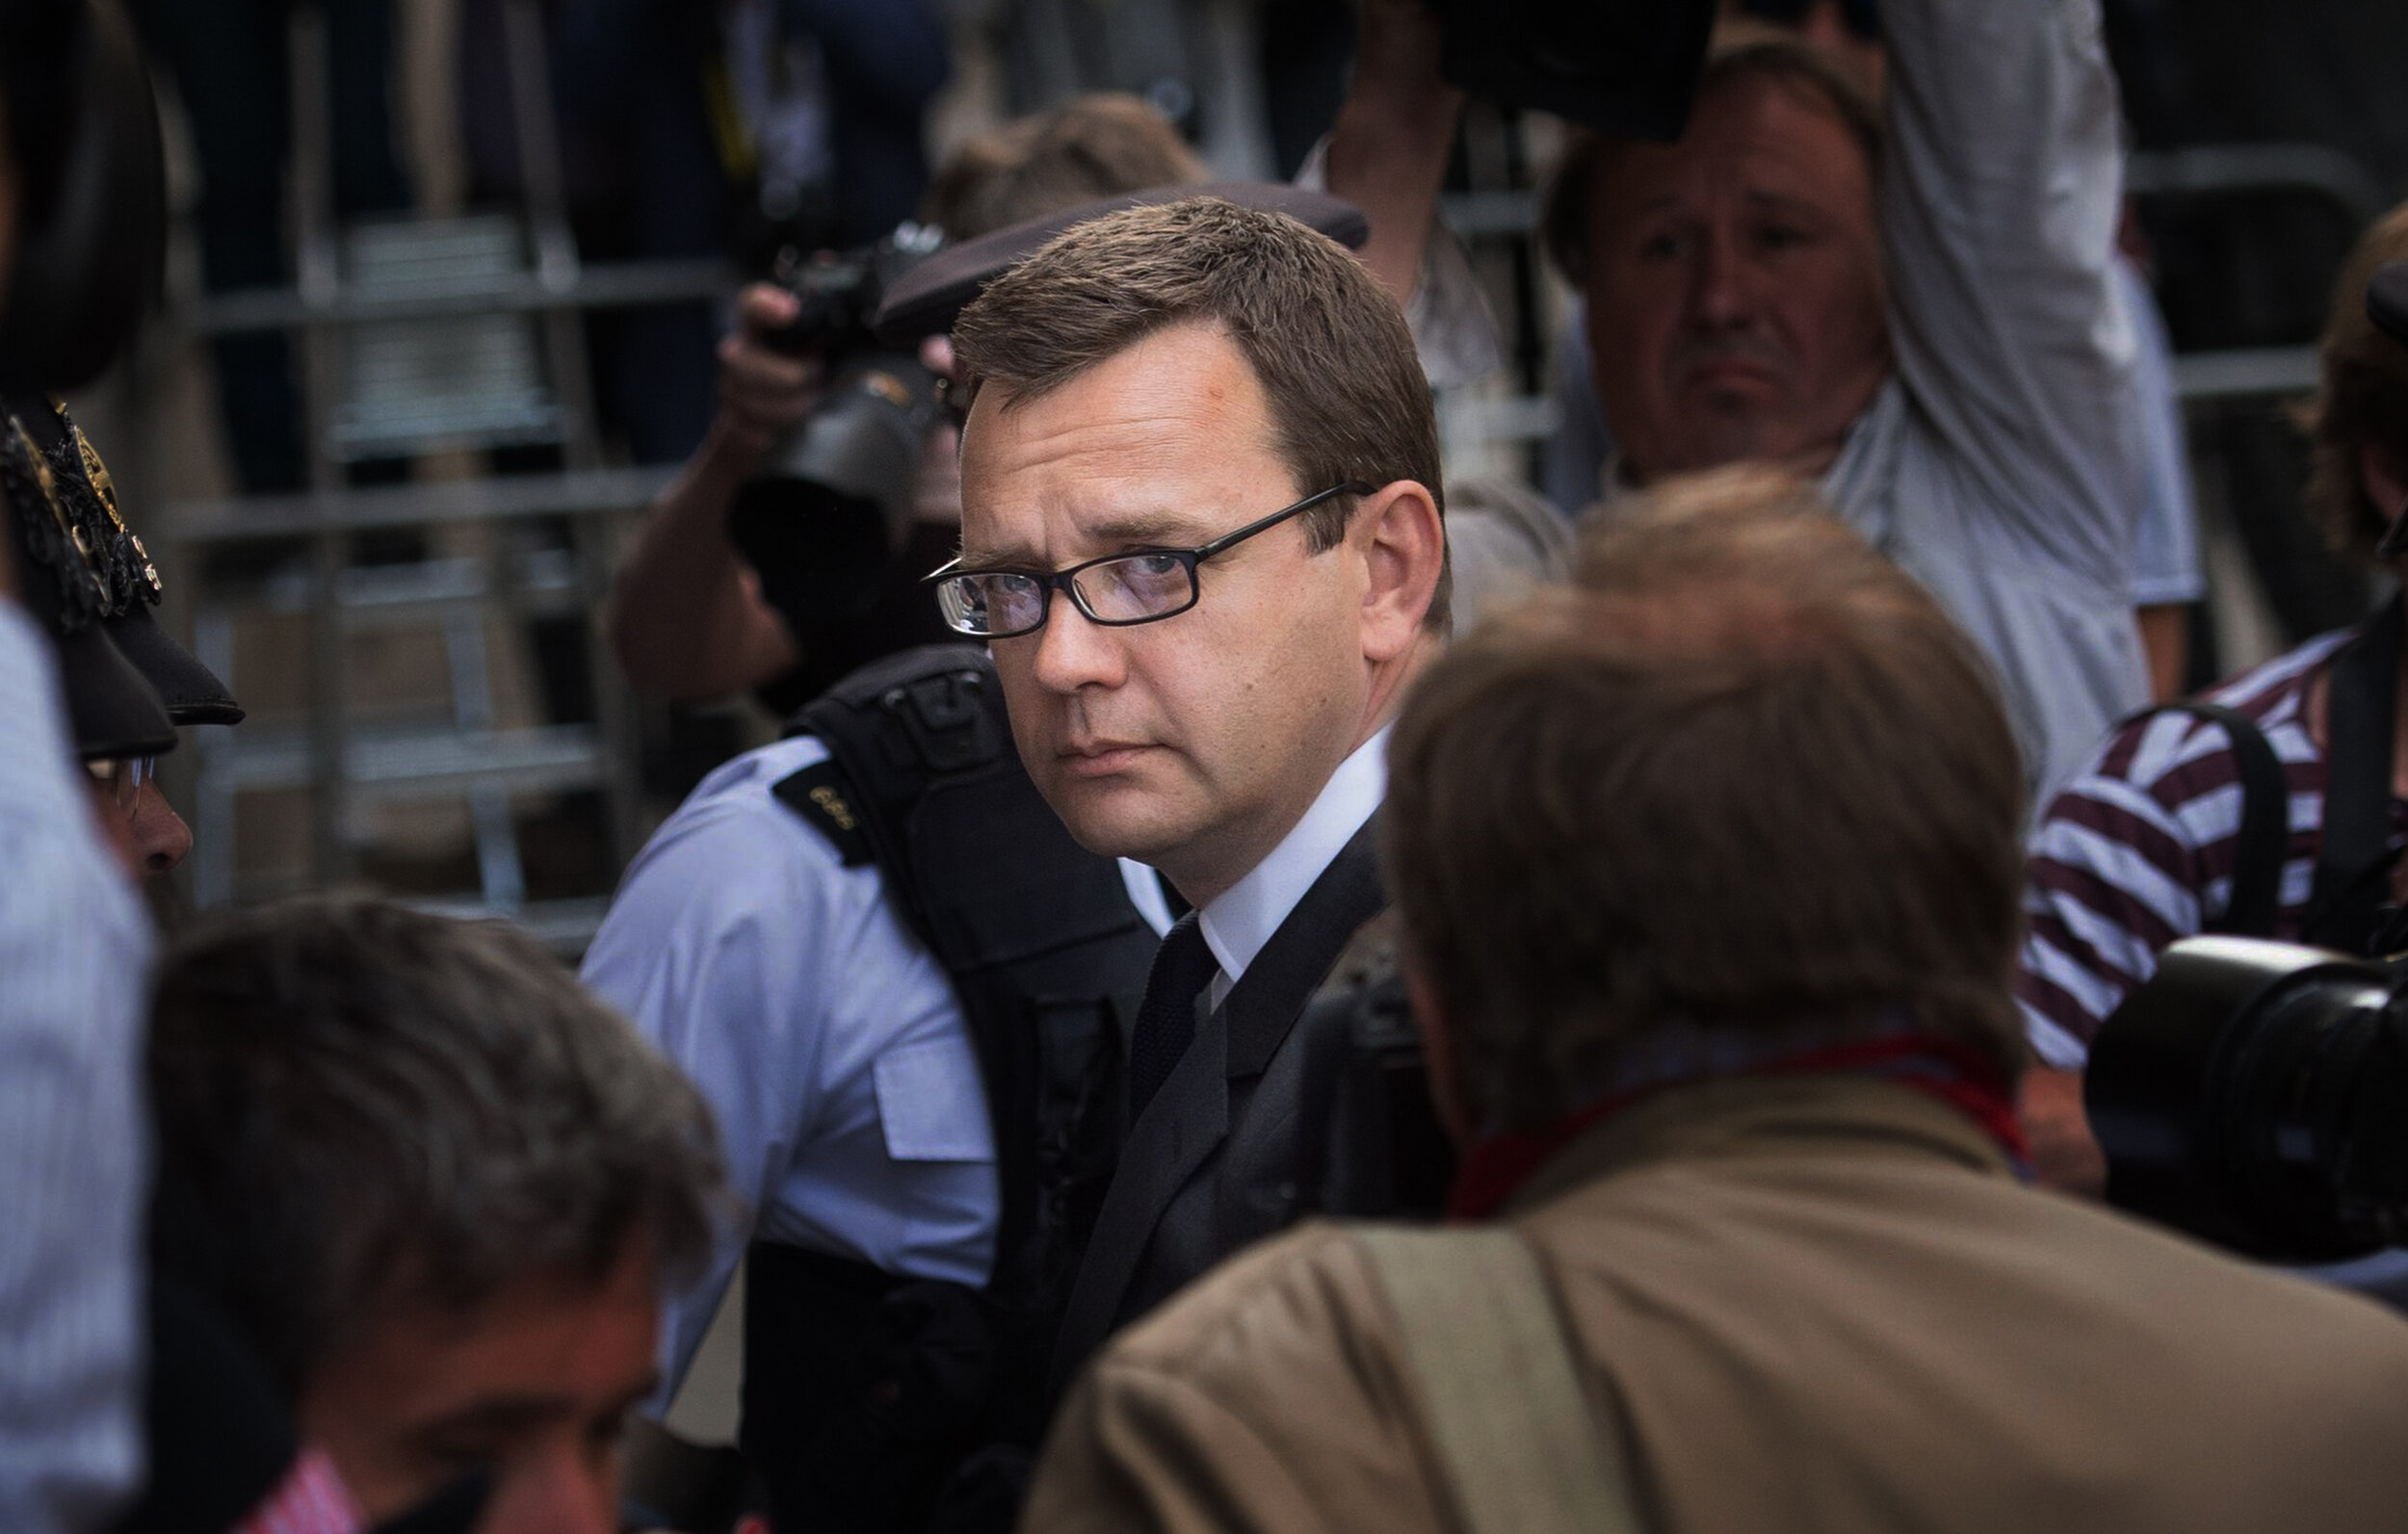 EXCLUSIVE: Andy Coulson used Milly Dowler PI to spy on JK Rowling, High Court hears